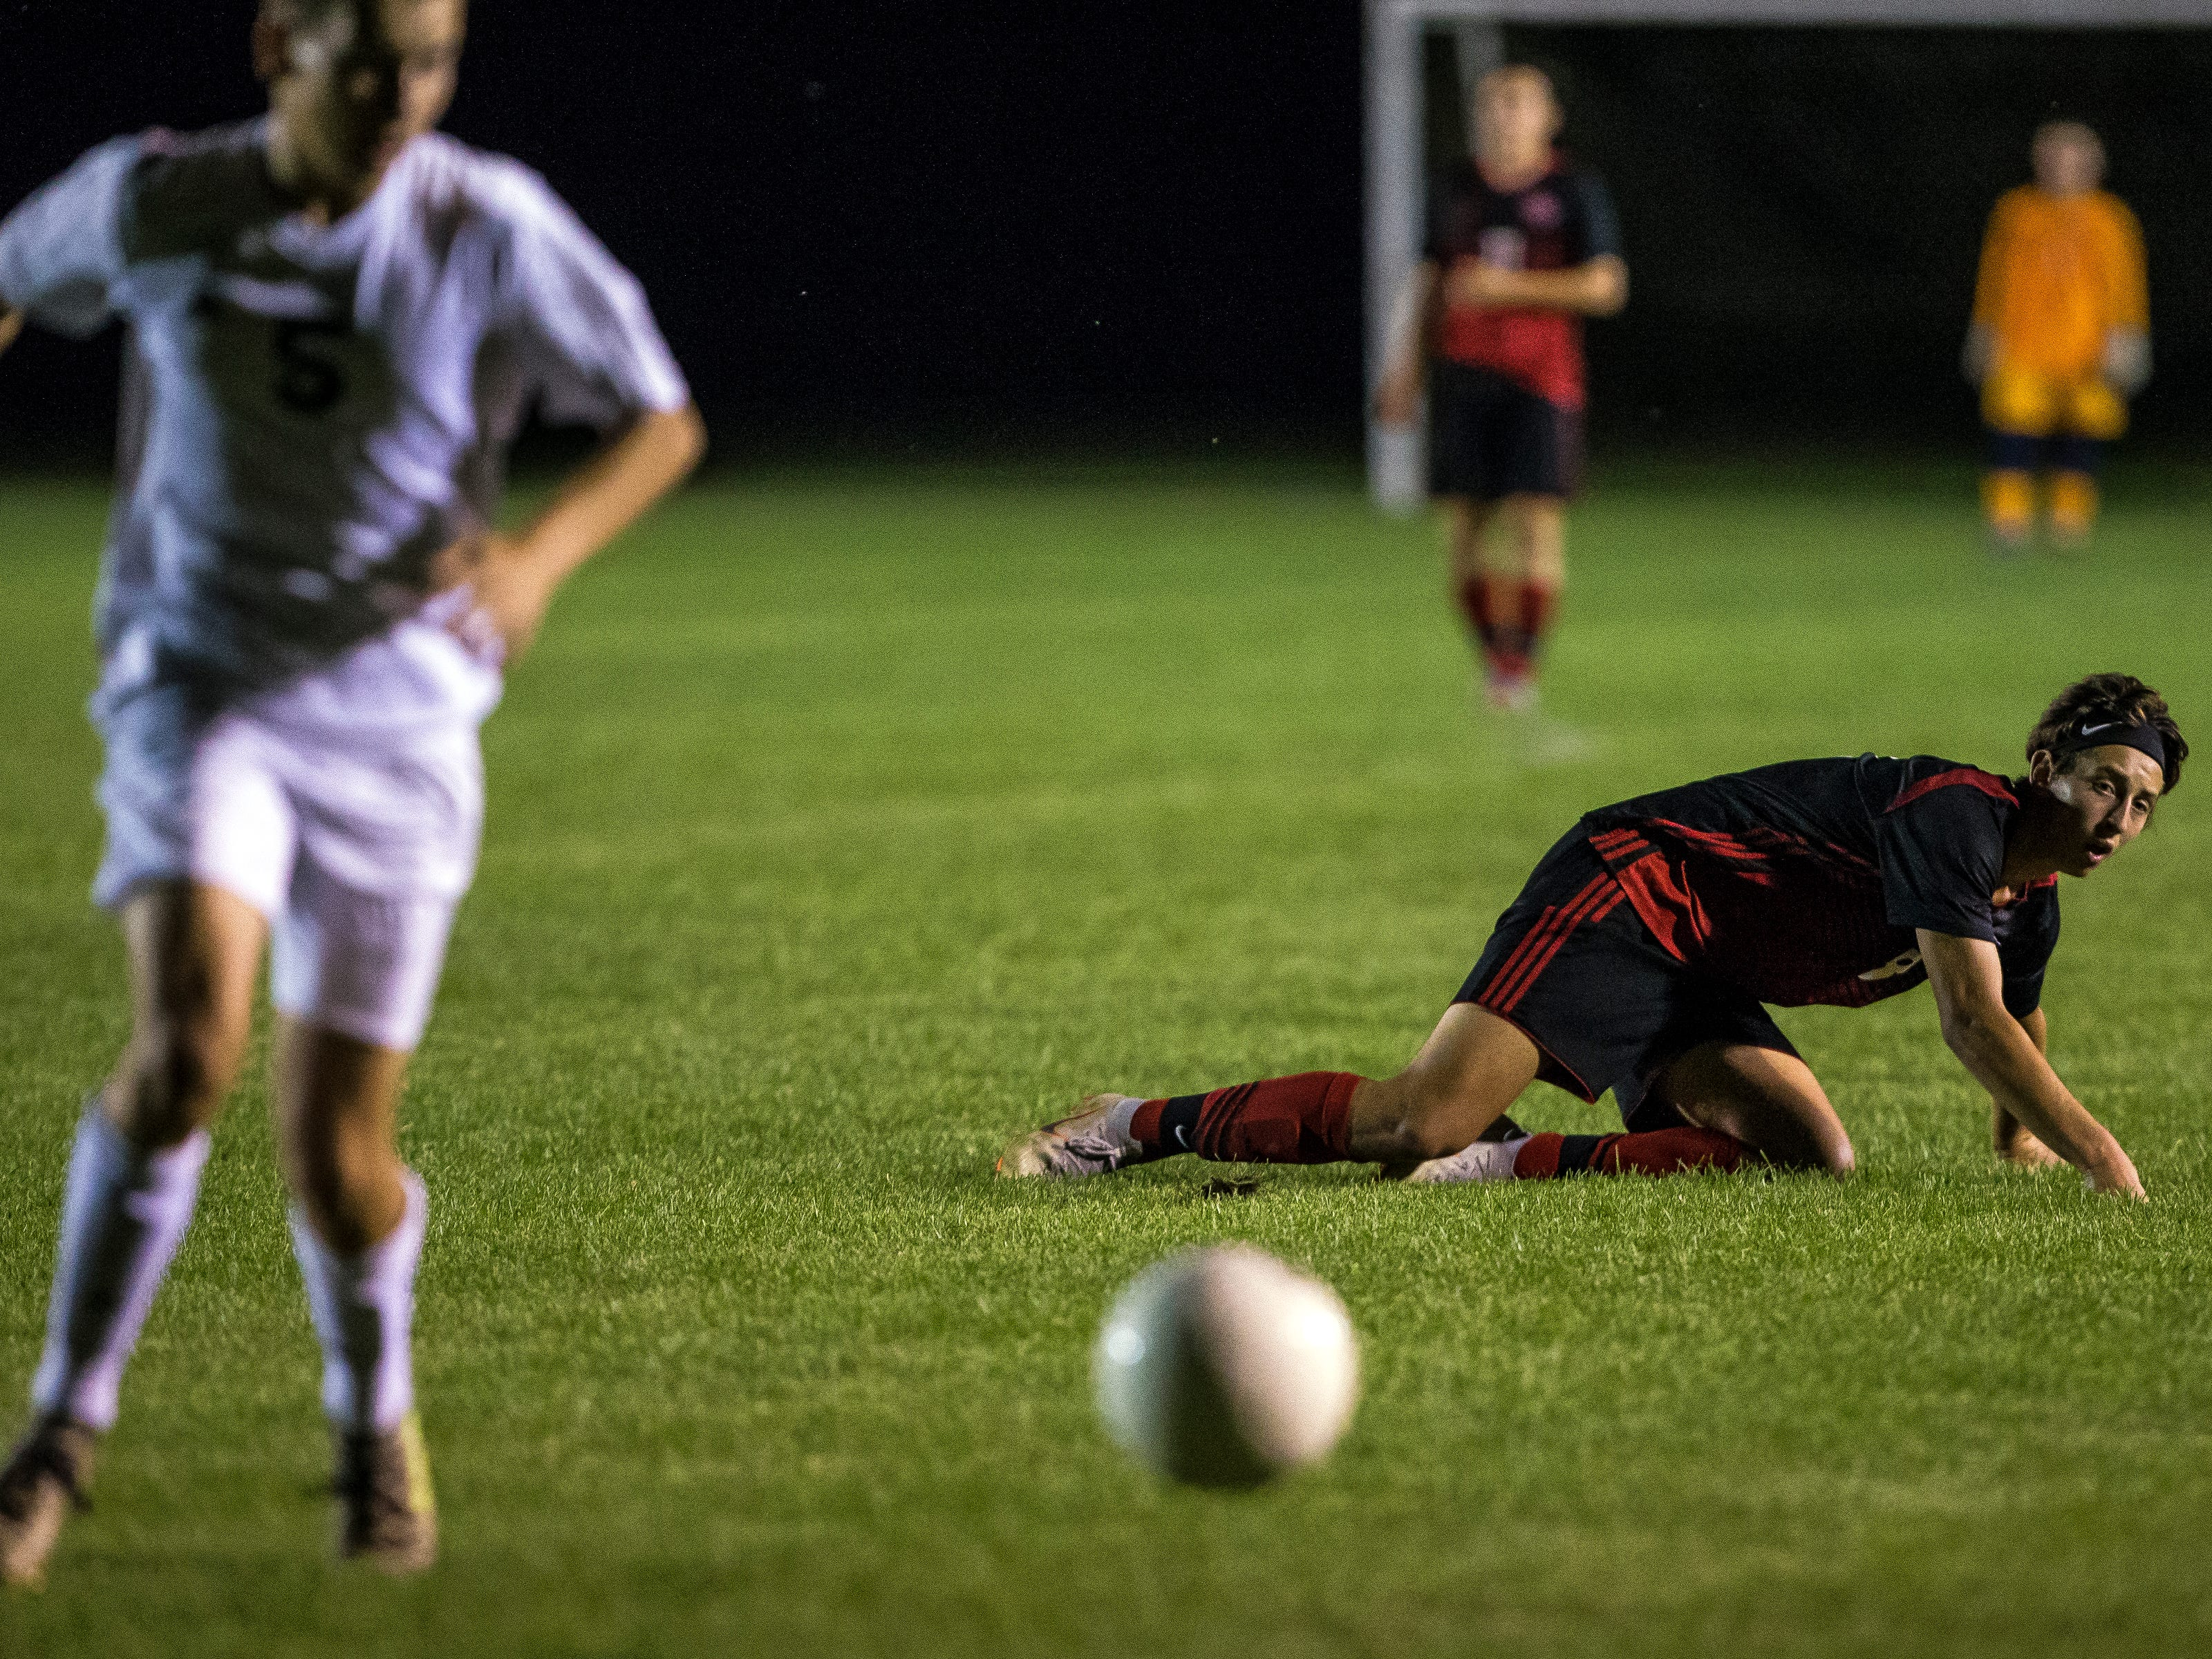 SPASH player Ethan Kane watches the ball after losing possession during a soccer game between SPASH and D.C. Everest in Stevens Point, Wis., September 13, 2018.